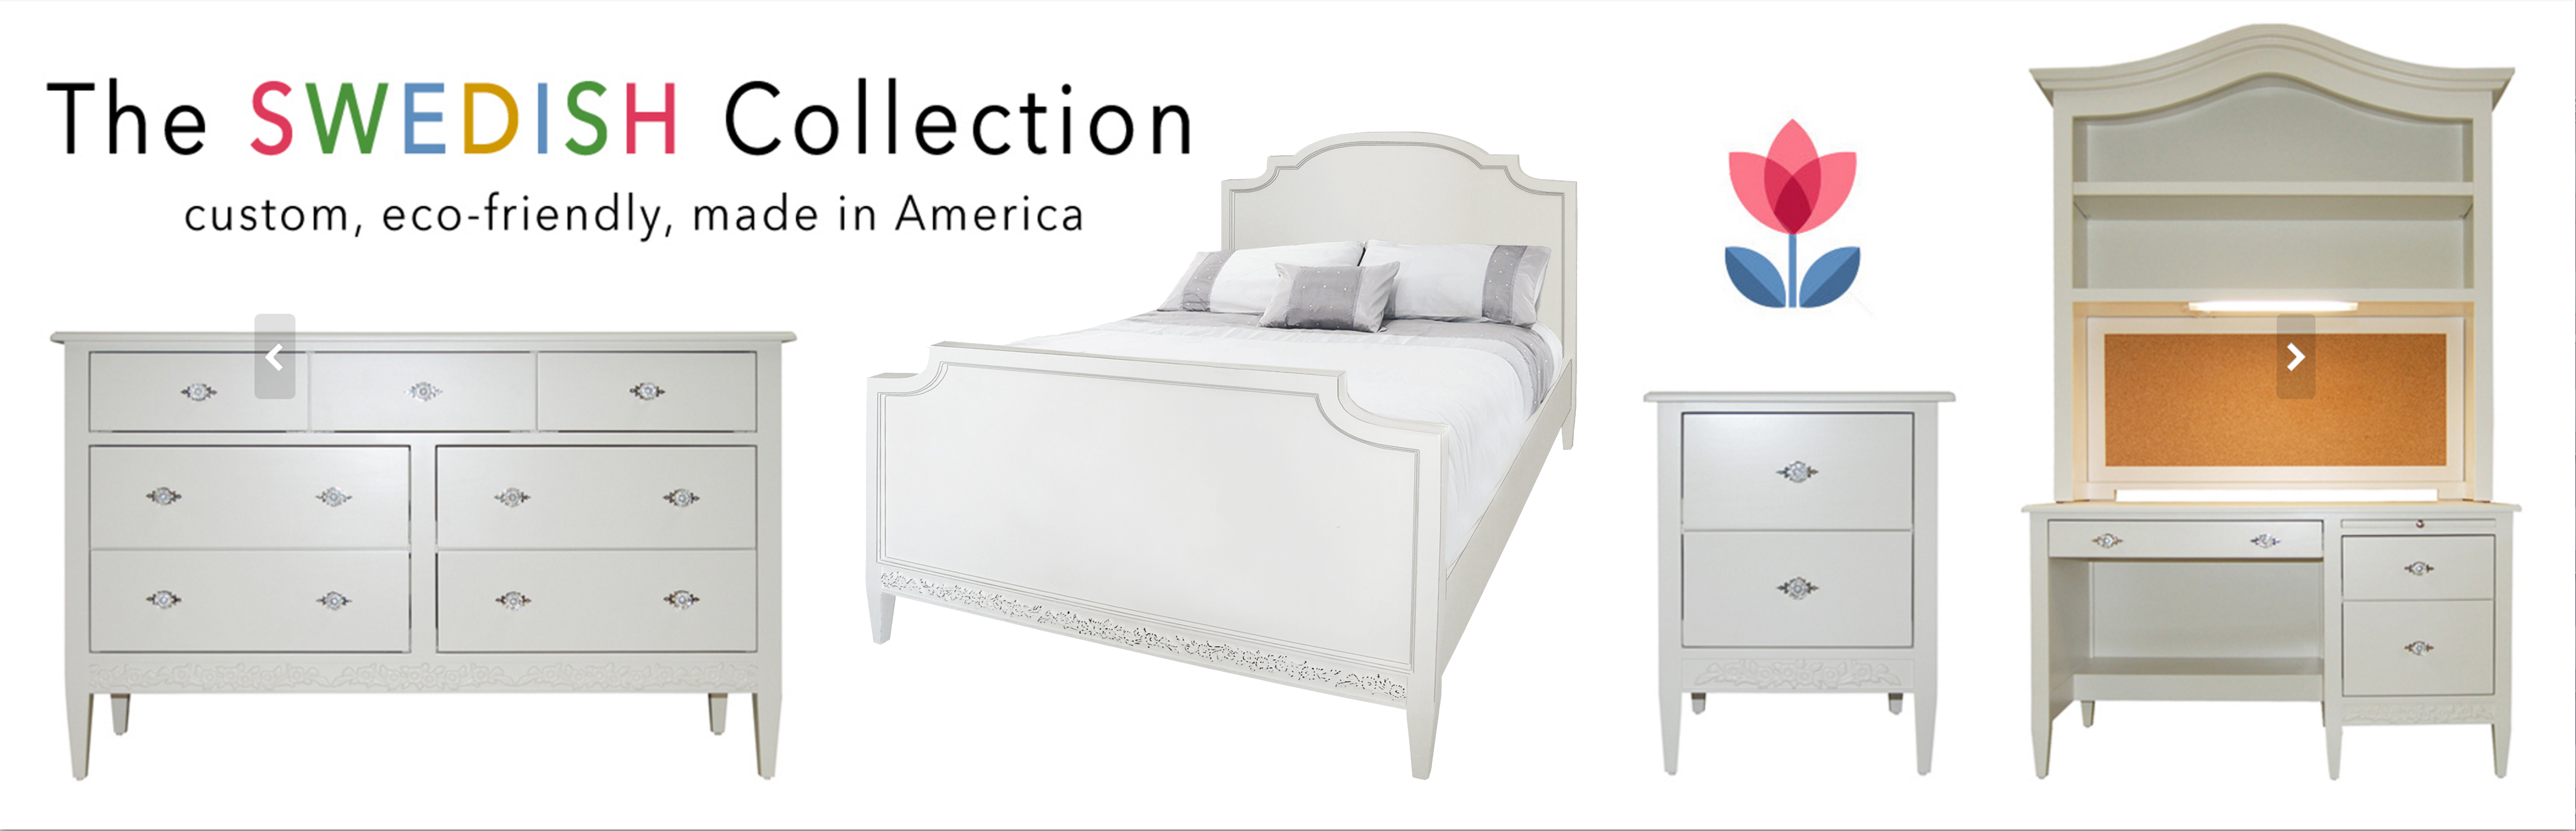 luxury baby nursery  children's furniture trade only  nyc  - we specialize in fine baby and children's furniture designed by zoyabograd asid